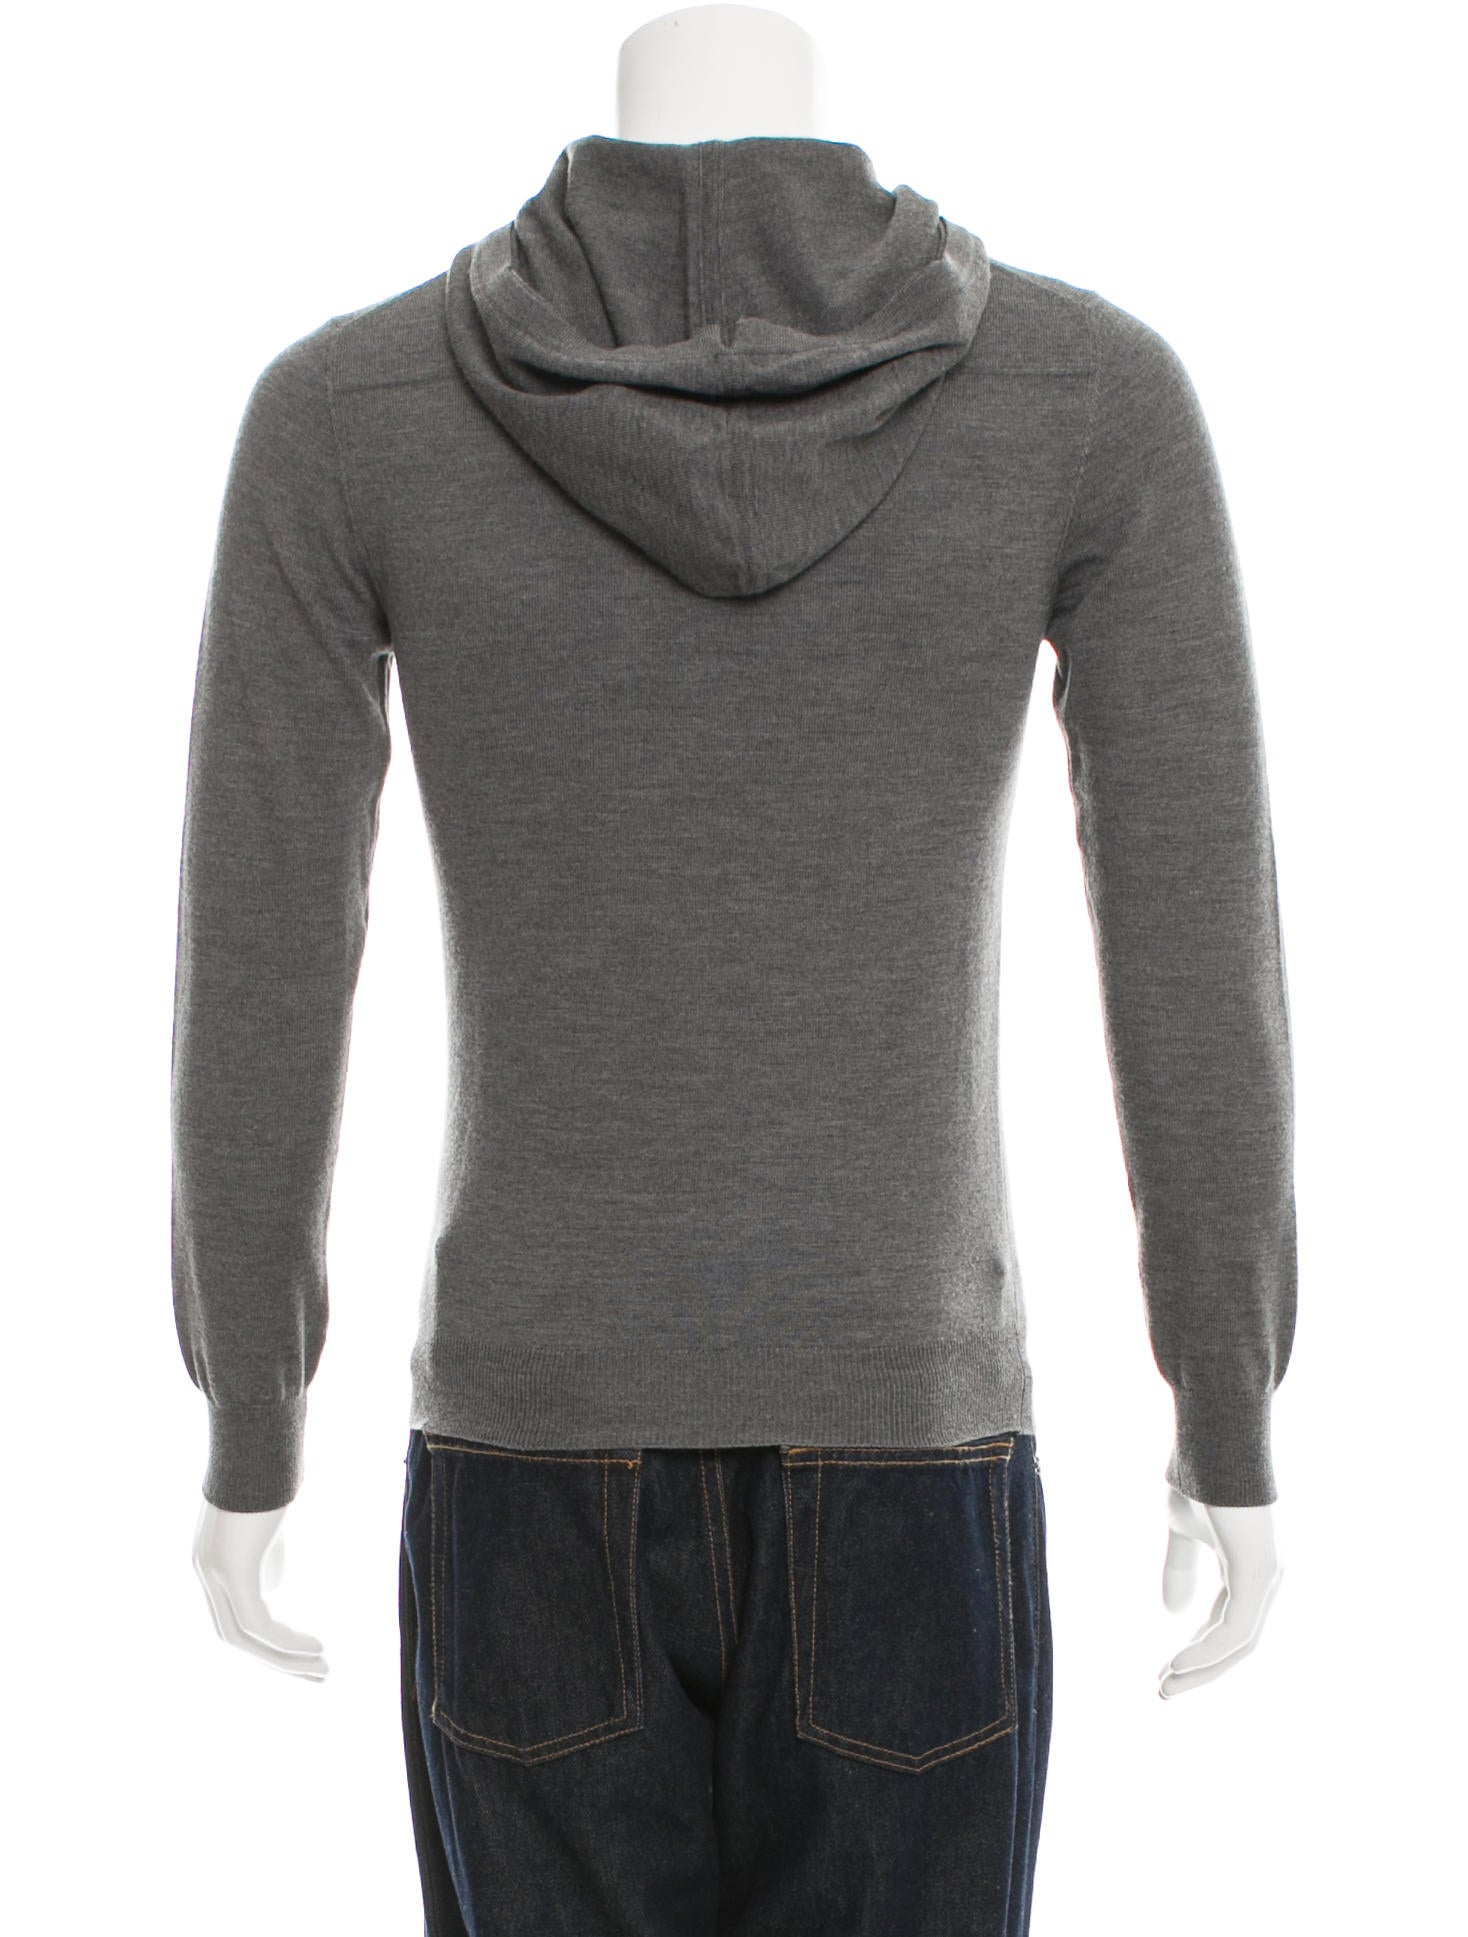 dior homme hooded wool sweatshirt clothing hmm22868 the realreal. Black Bedroom Furniture Sets. Home Design Ideas